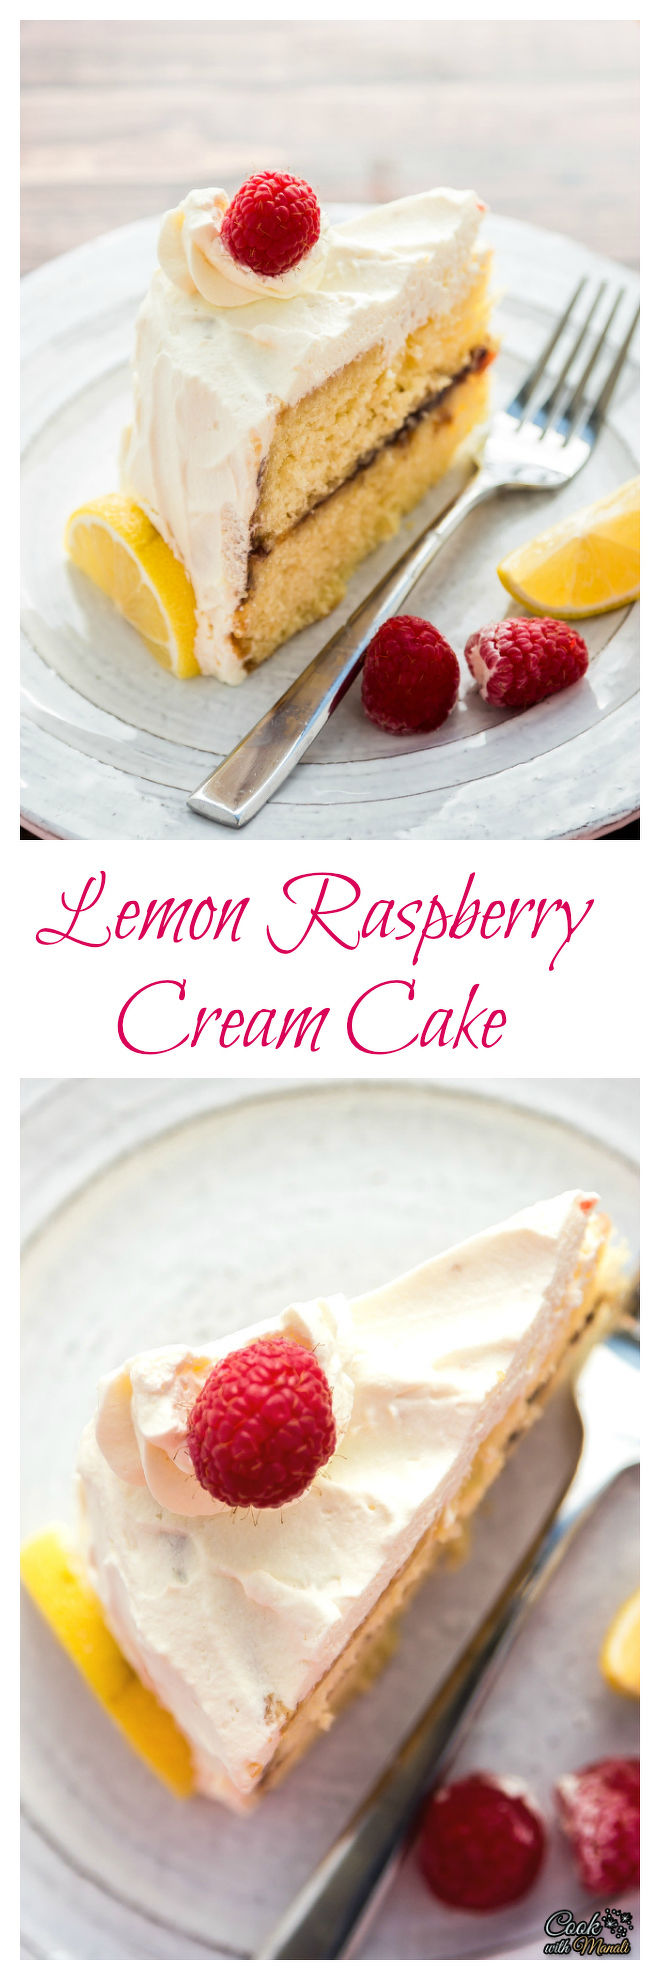 Lemon-Raspberry-Cream-Cake-Collage-nocwm